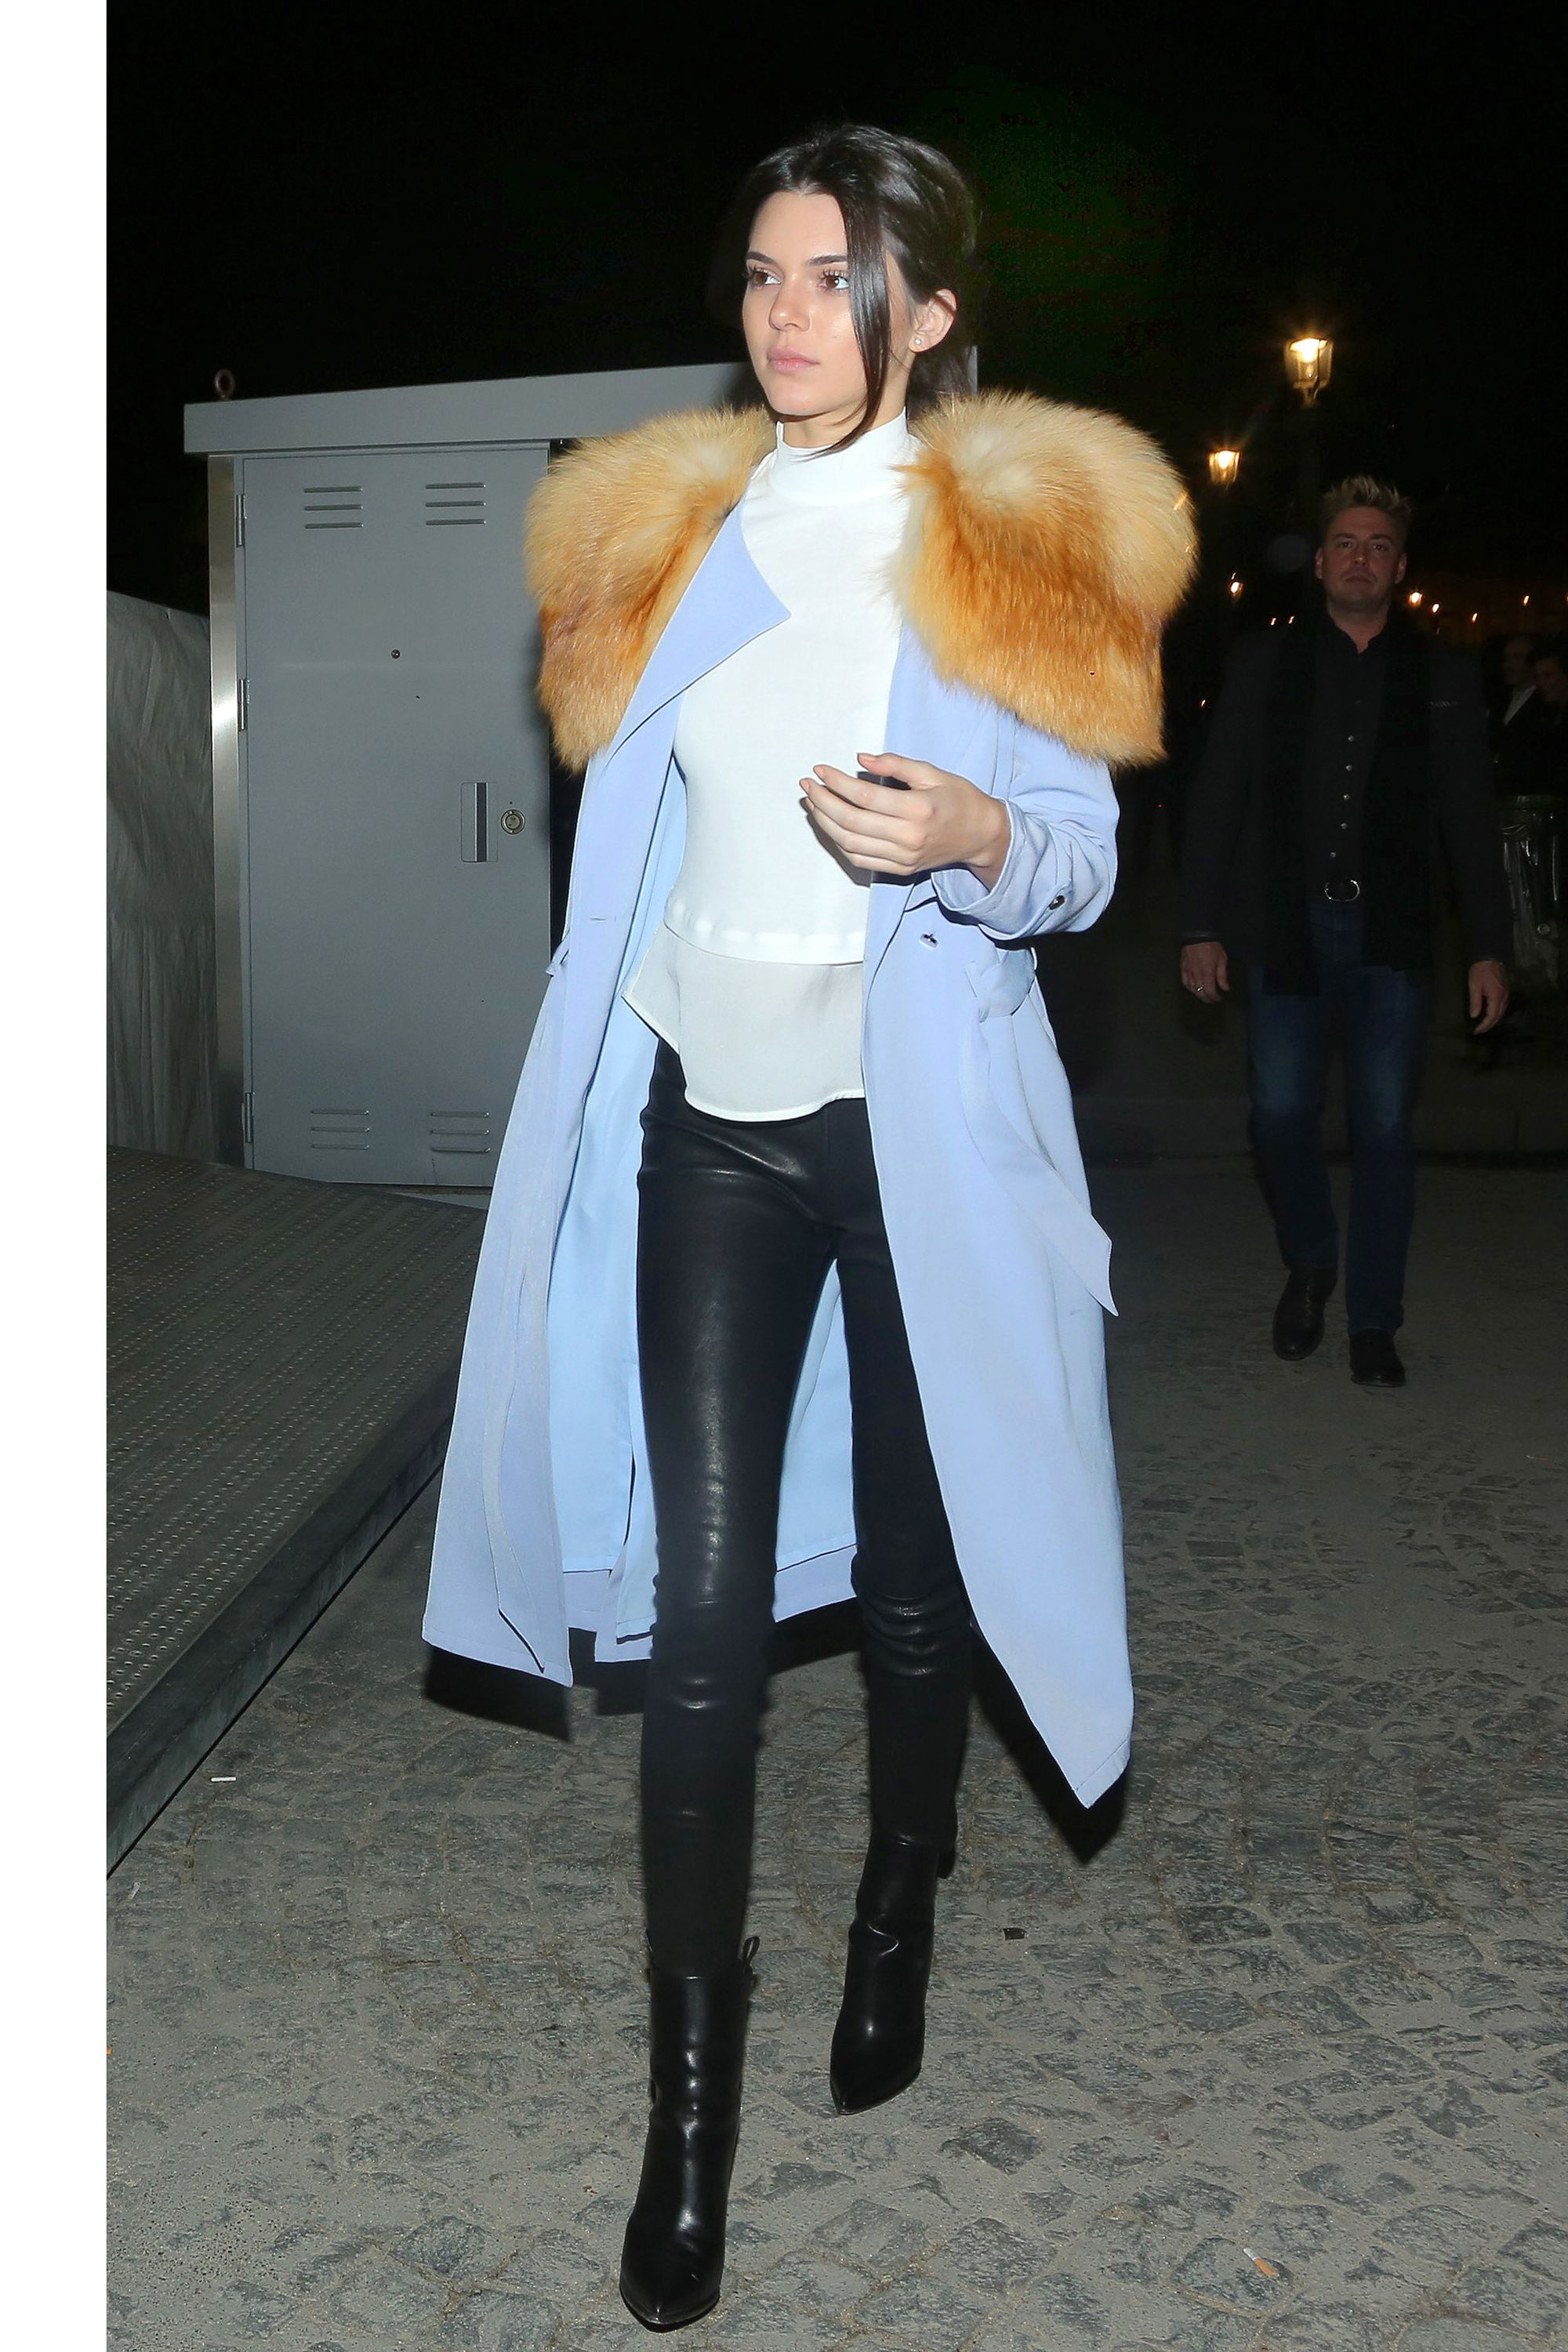 Kendall Jenner shows off her fashion style on a cold night in Paris at the Ferris Wheel with some fun and a flowing light blue jacket. The young model is in town for fashion week and enjoyed some downtime with her momager, Kris Jenner and some friends for a night on the Ferris Wheel overlooking Paris and the Eiffel tower.<P>Pictured: Kendall Jenner<B>Ref: SPL935713  250115  </B><BR/>Picture by: Brian Prahl / Splash News<BR/></P><P><B>Splash News and Pictures</B><BR/>Los Angeles:310-821-2666<BR/>New York:212-619-2666<BR/>London:870-934-2666<BR/>photodesk@splashnews.com<BR/></P>